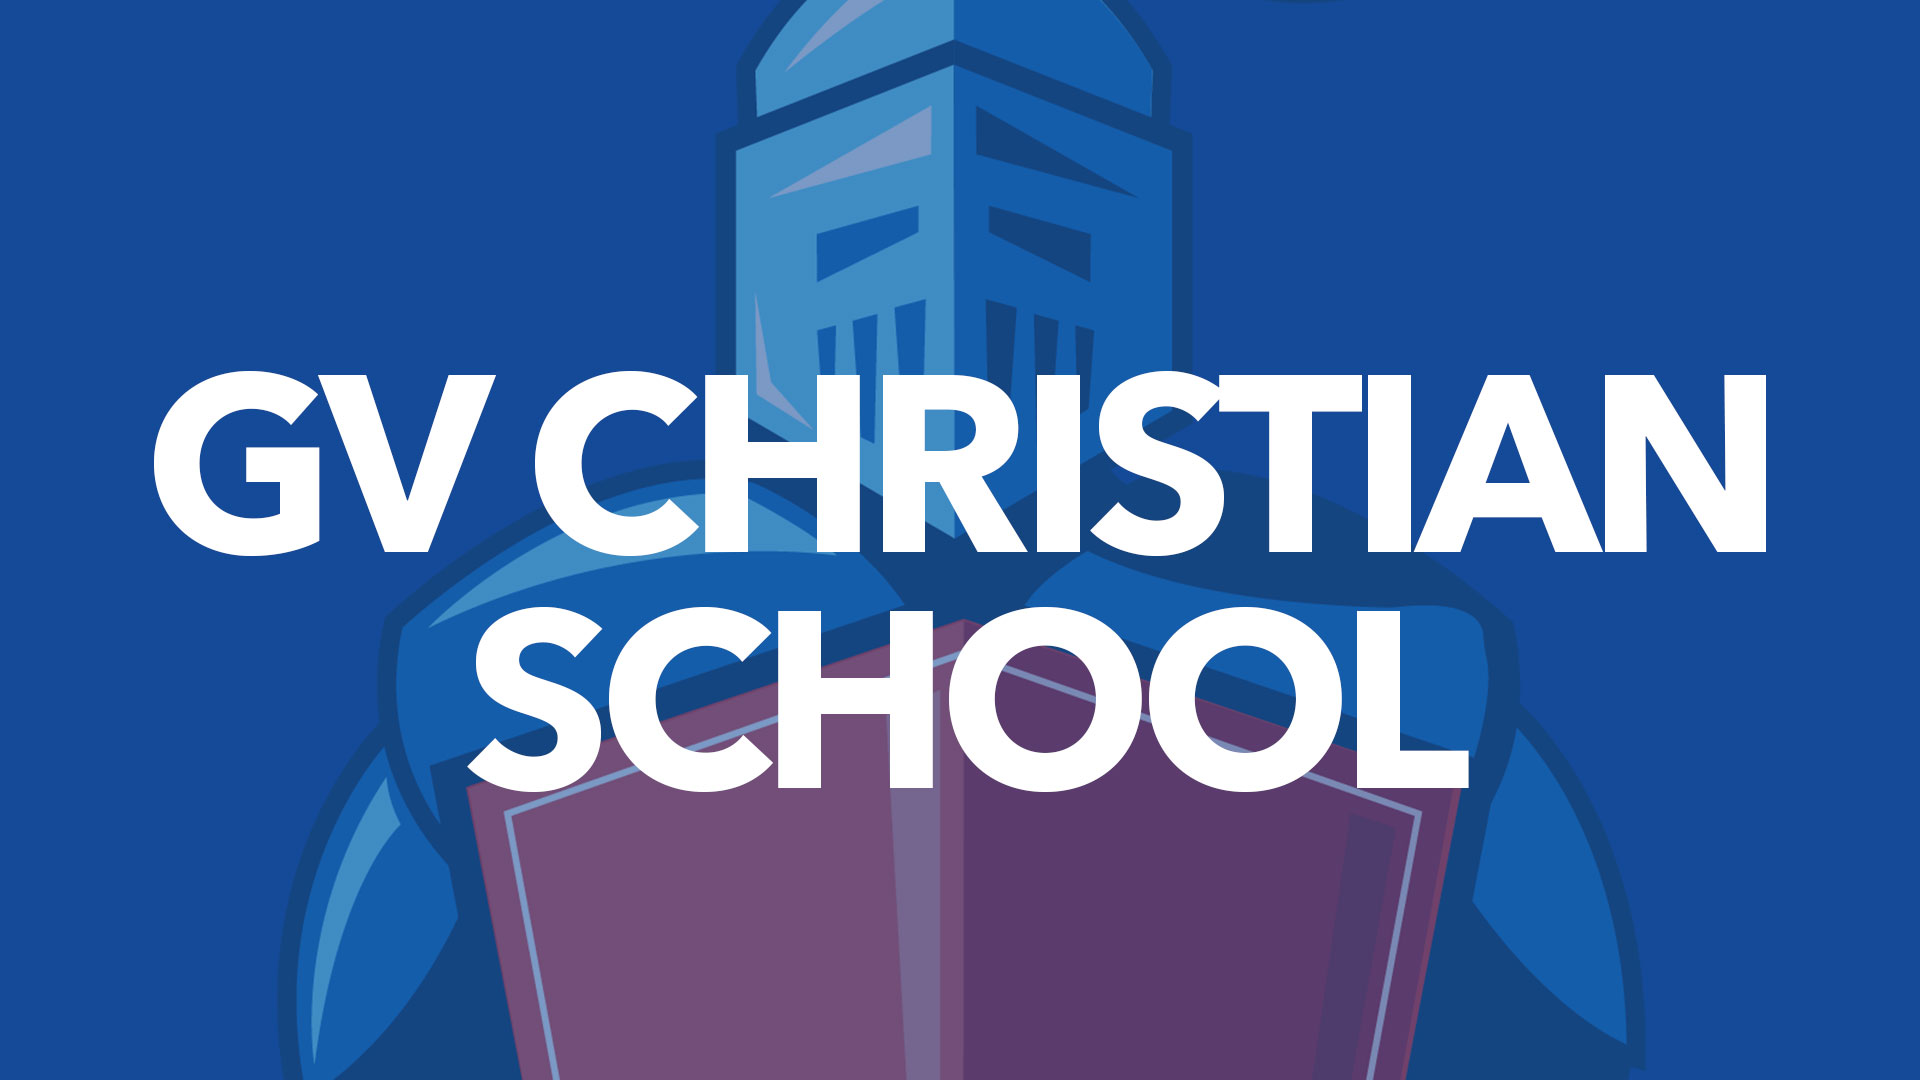 GV Christian School is a ministry of GV Christian Center